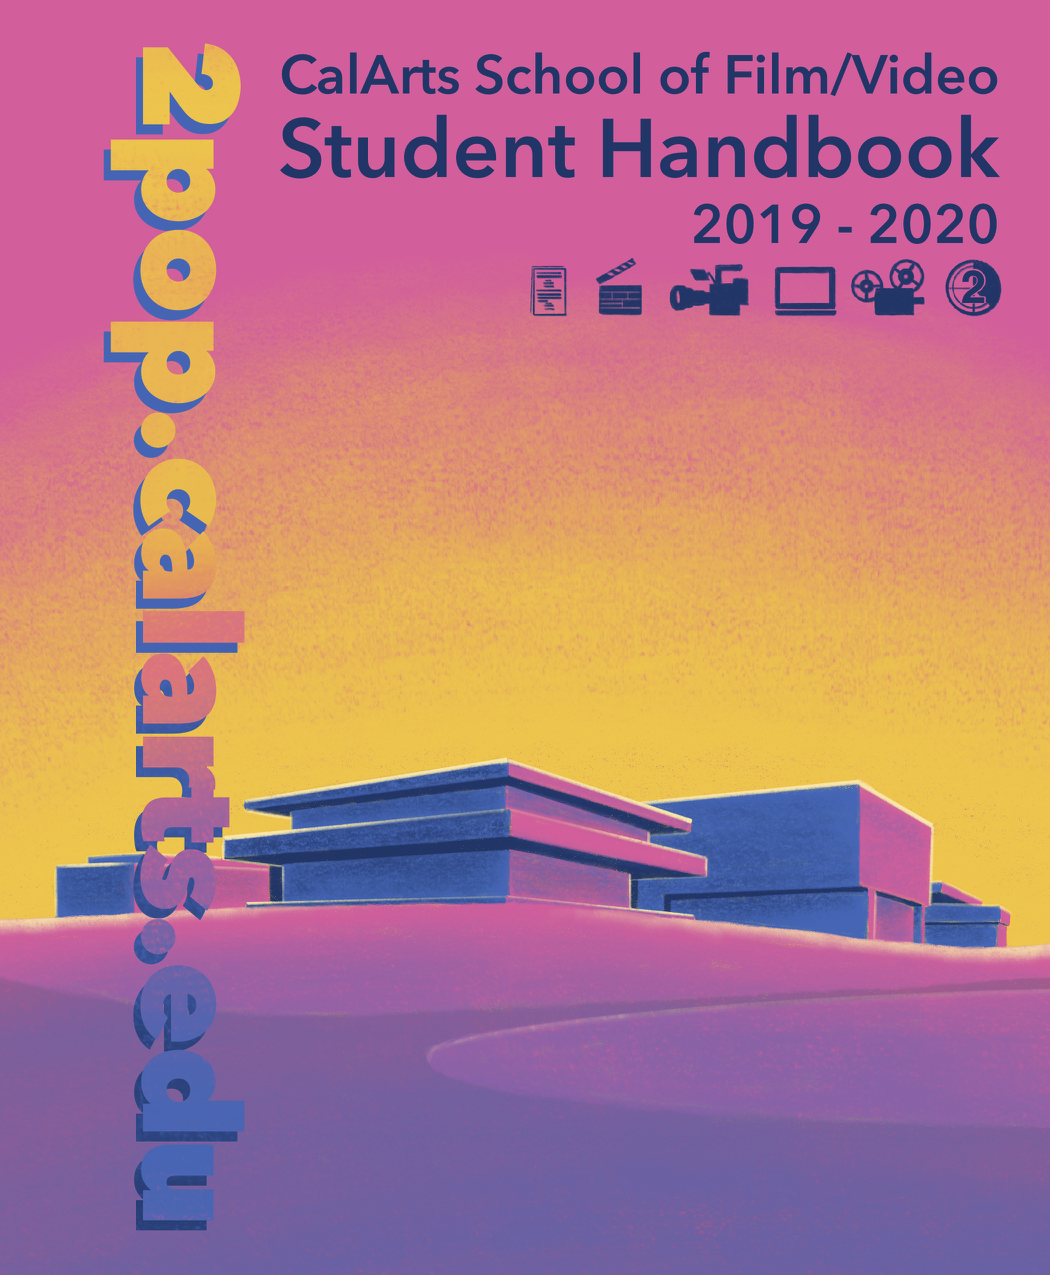 Student Handbook Cover 2019-2020